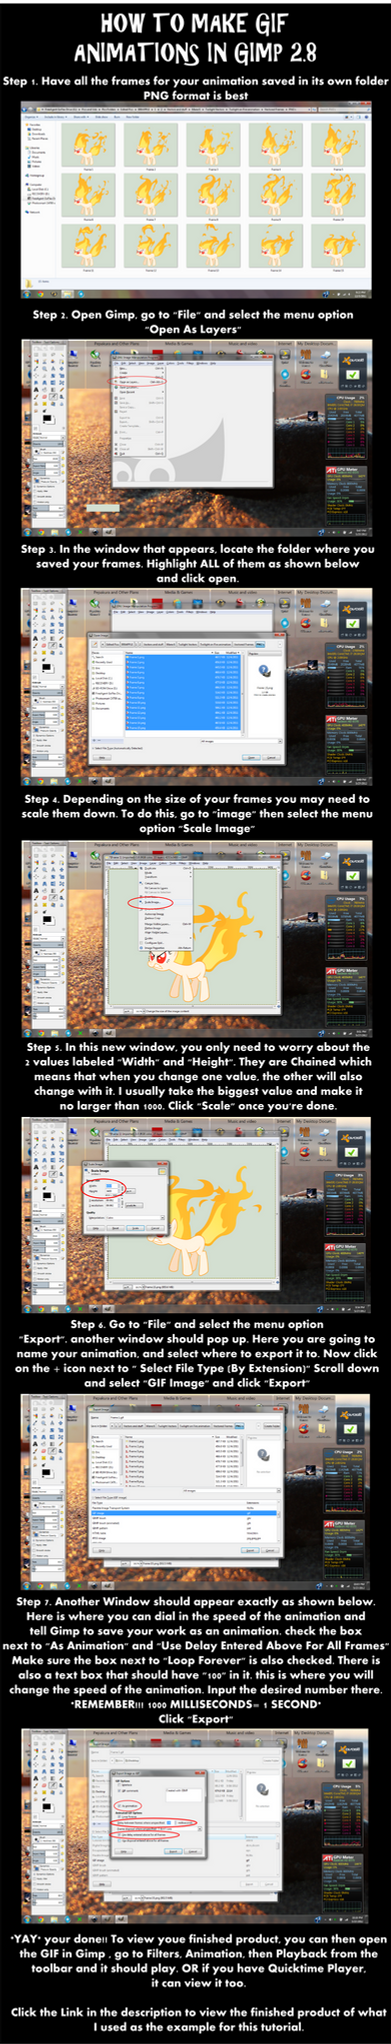 How To Make A Gif In Gimp 28 By Erockertorres